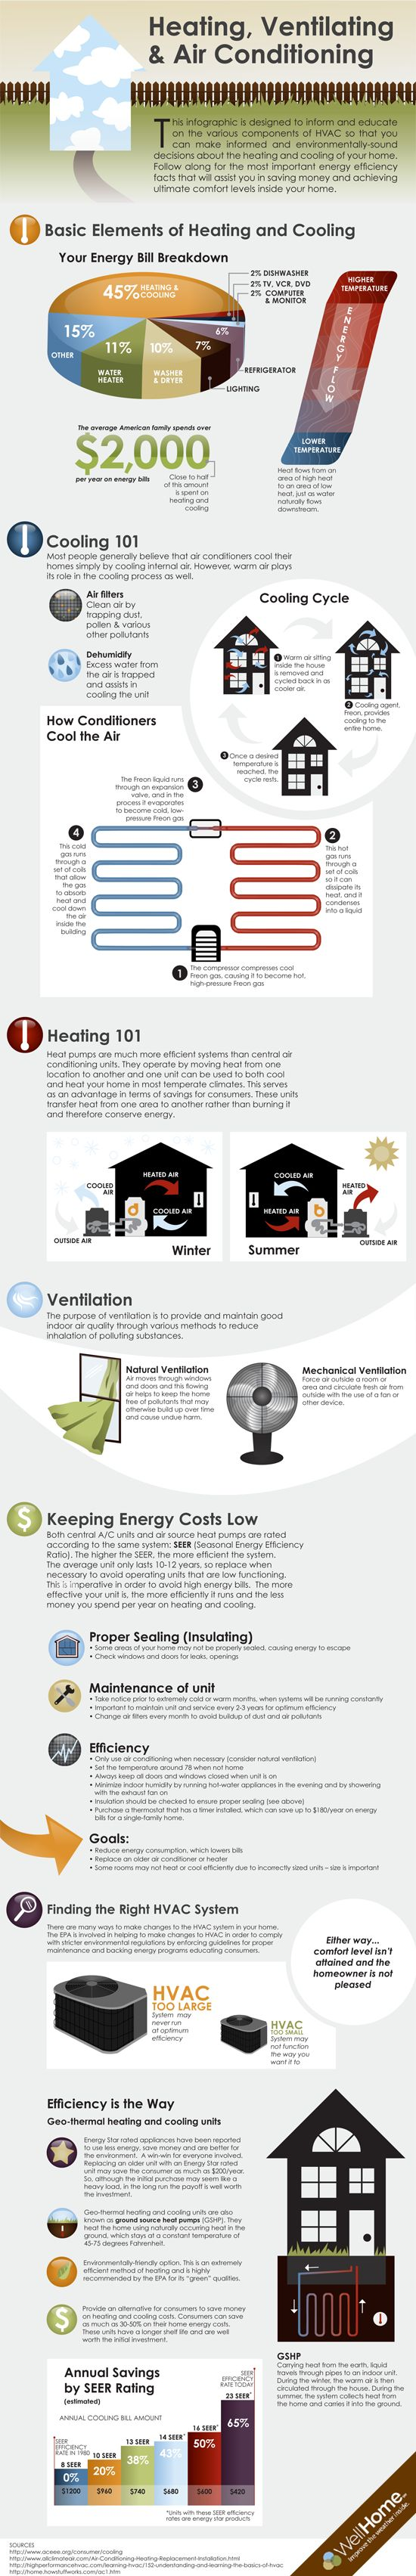 15 best images about hvac fun facts on pinterest for What type of heating system is best